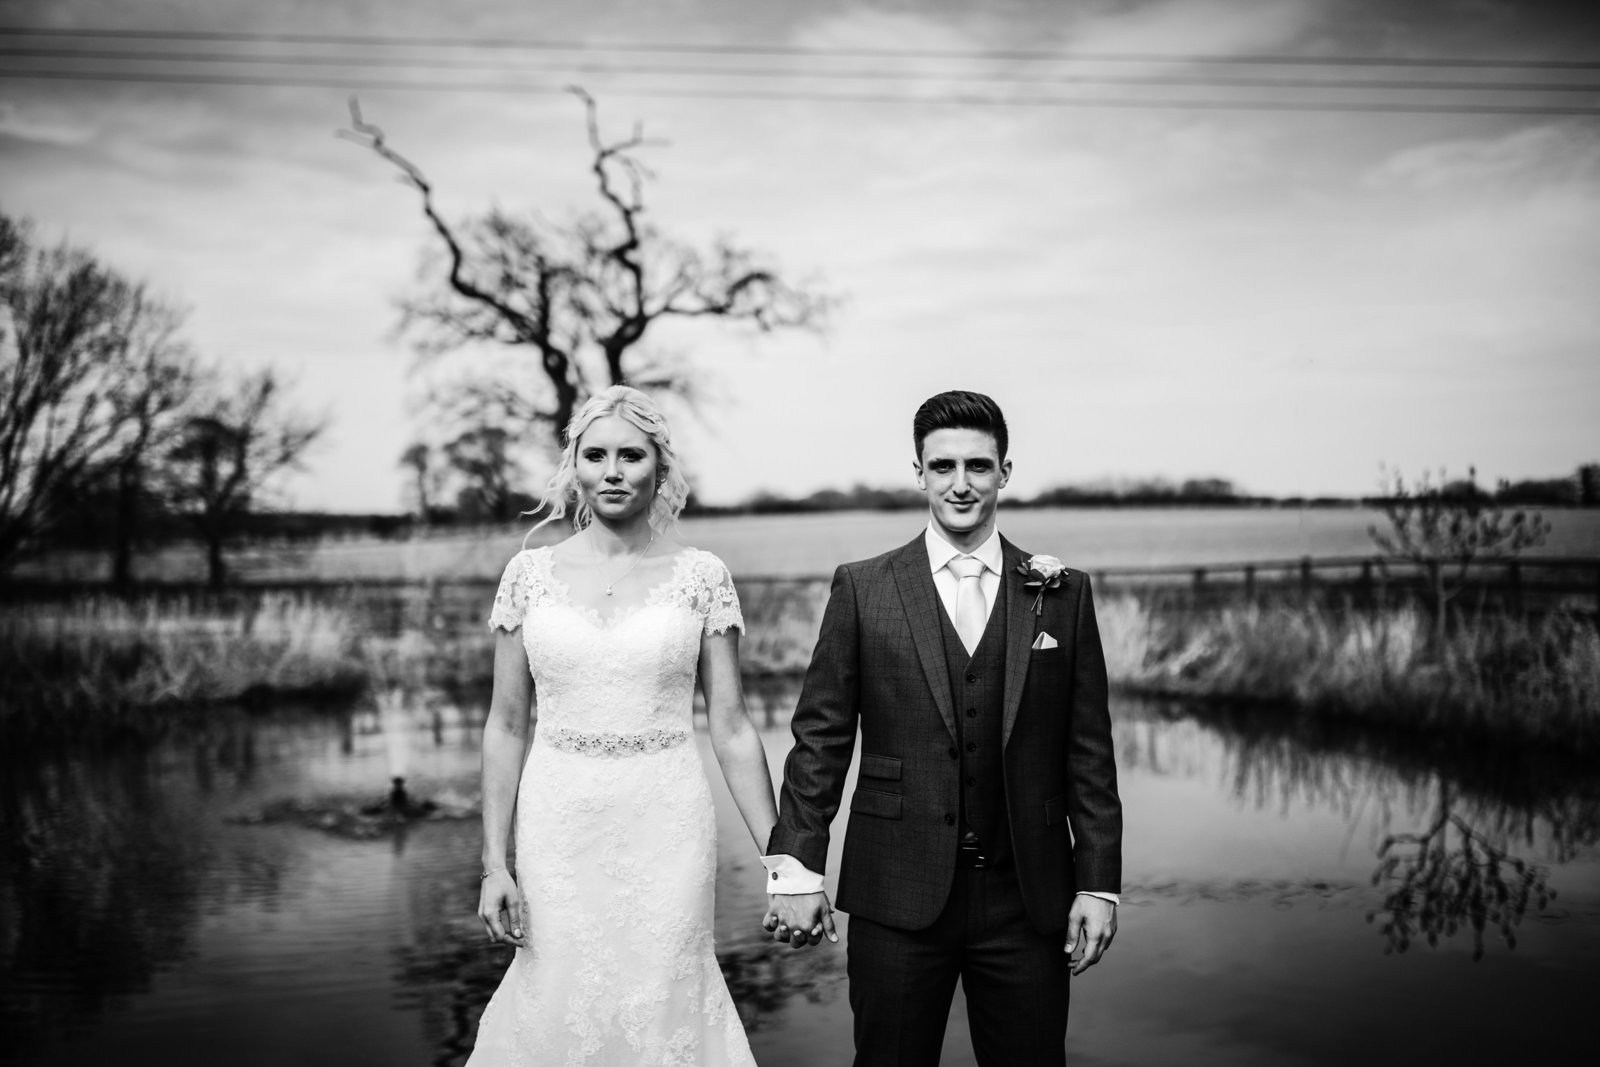 A portrait of a Bride and groom holding hands in front of a pond at a Suffolk wedding venue.